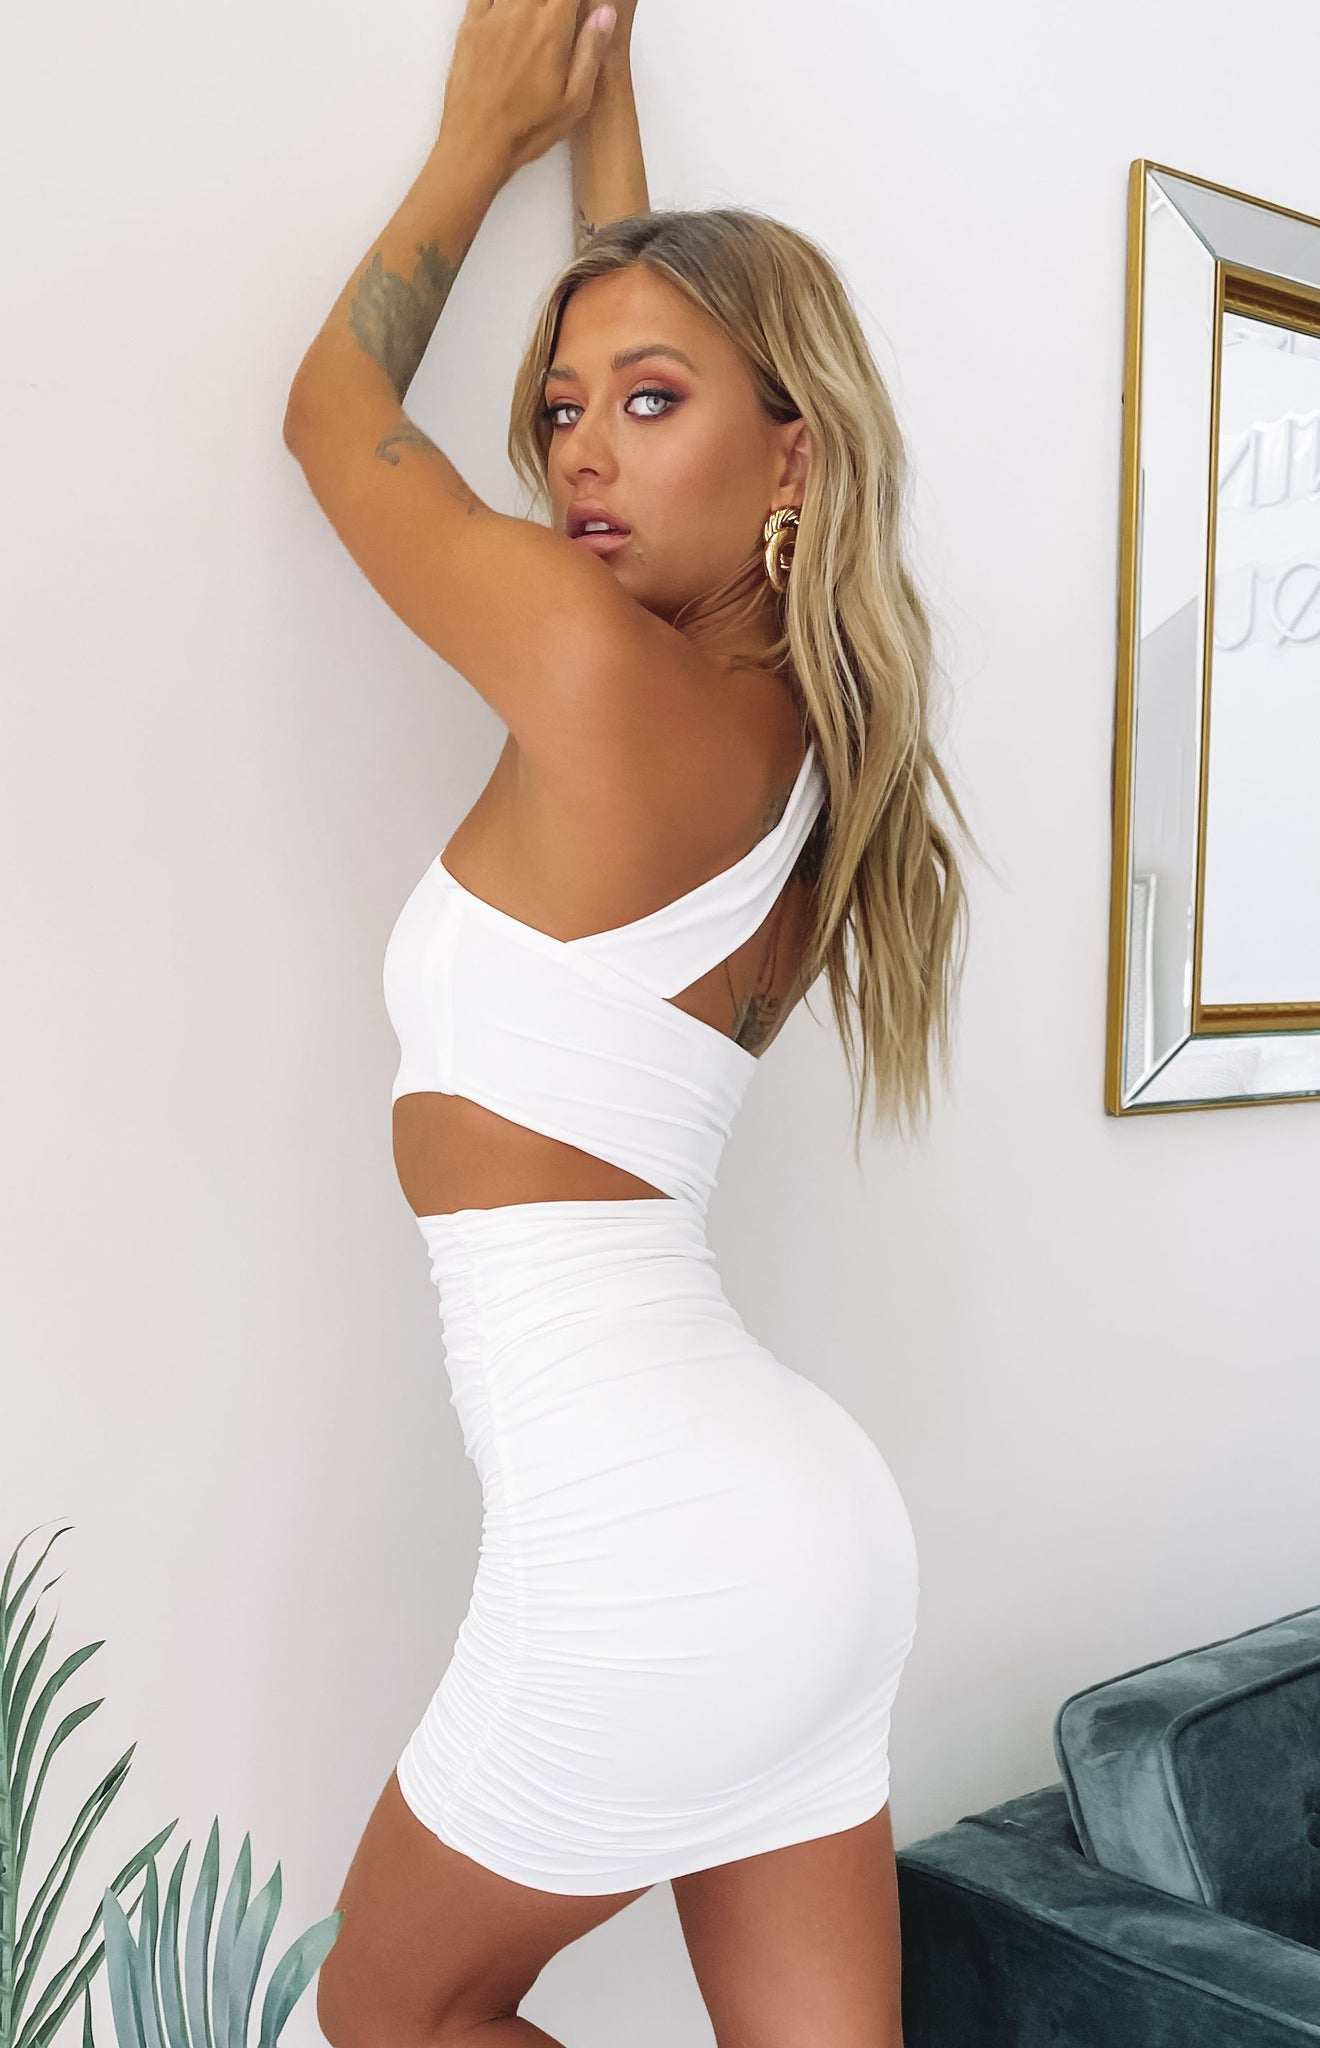 https://files.beginningboutique.com.au/STARS+IN+HER+EYES+PARTY+DRESS+WHITE+.mp4